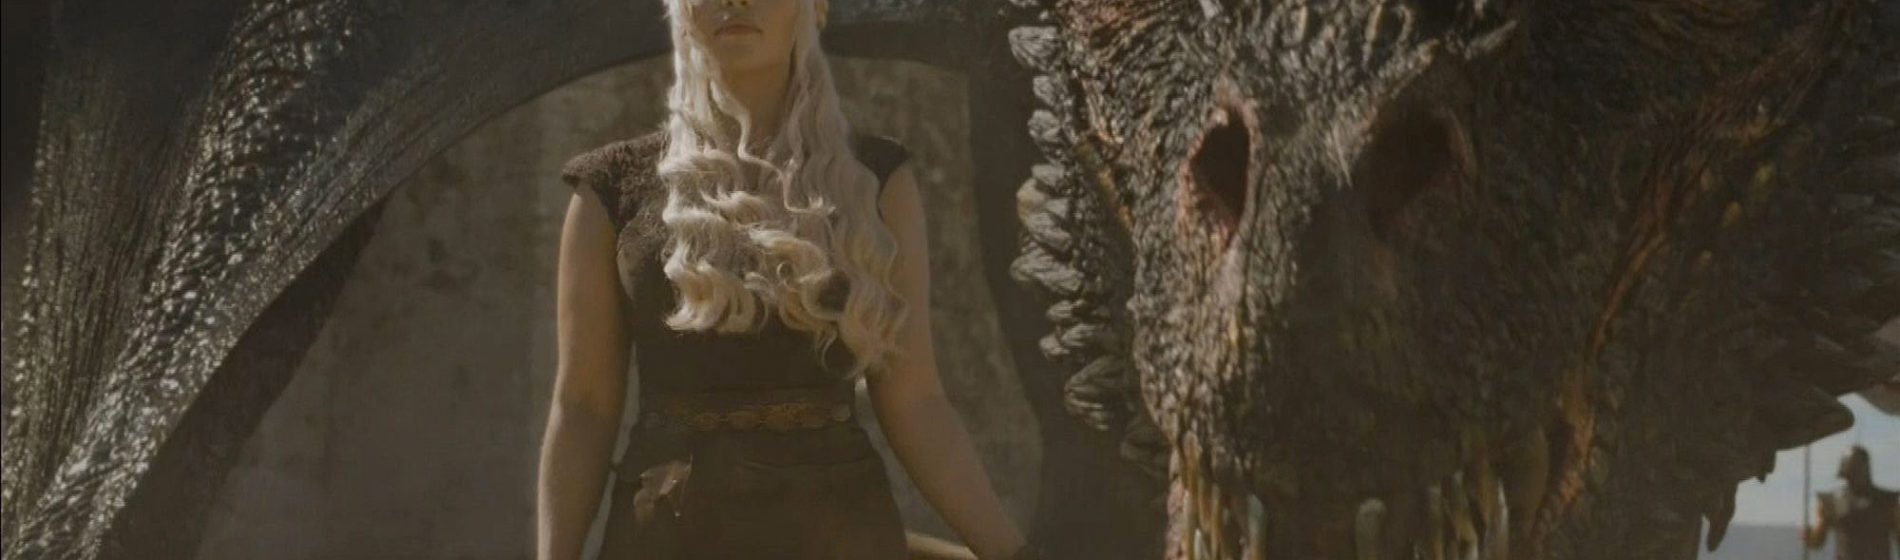 Game of Thrones Season 6 Episode 9